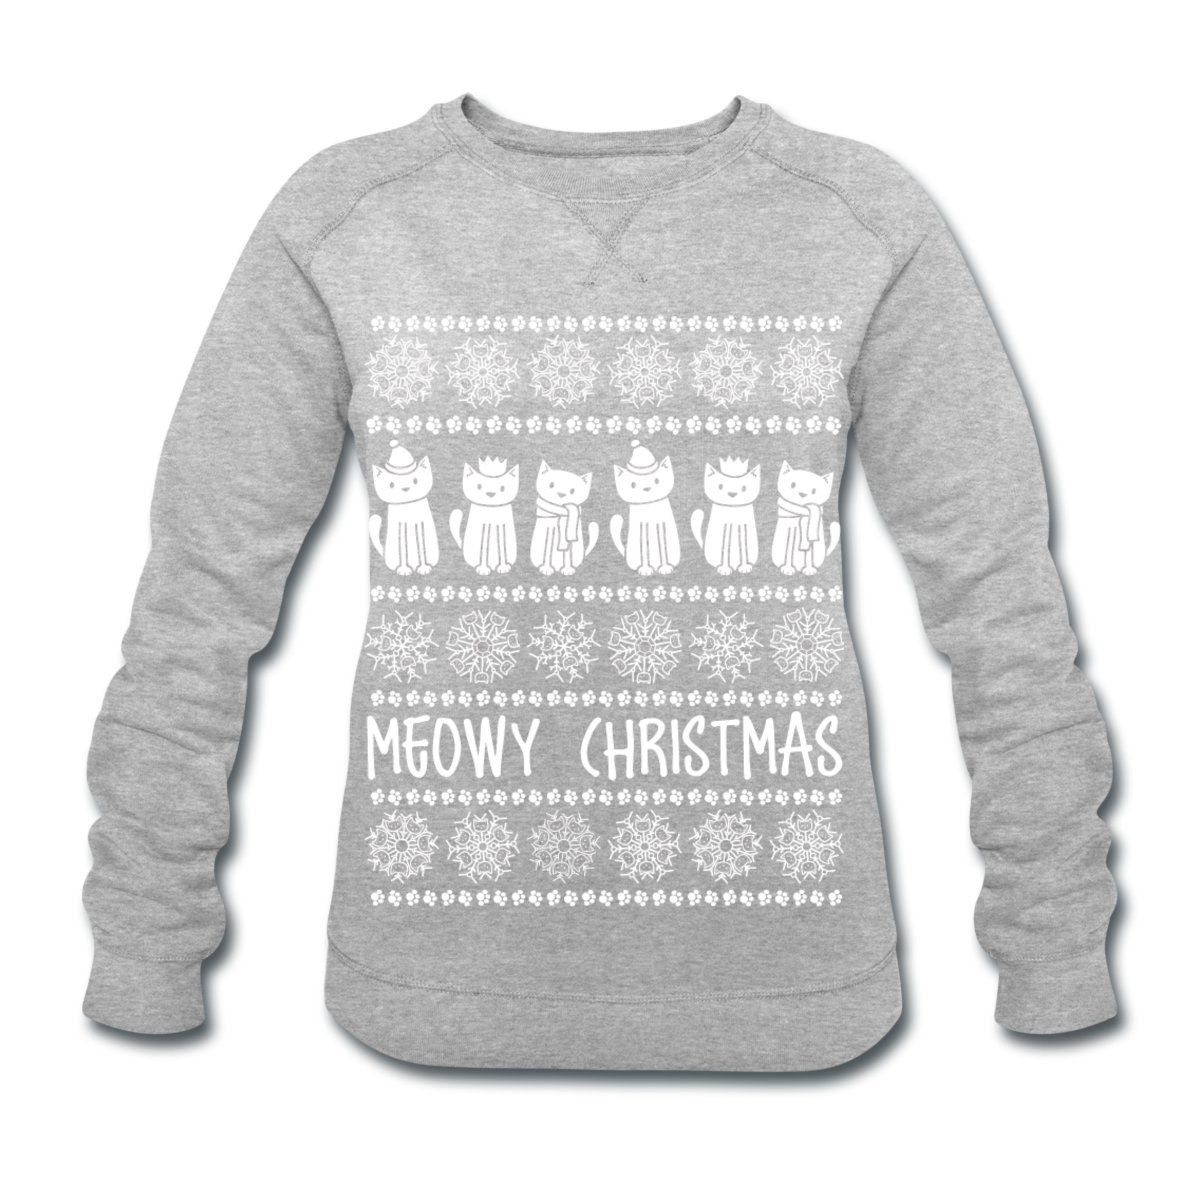 Forget about itchy Christmas jumpers, let's have Doodlecats' Christmas sweater instead – £25.90 @ Spreadshirt